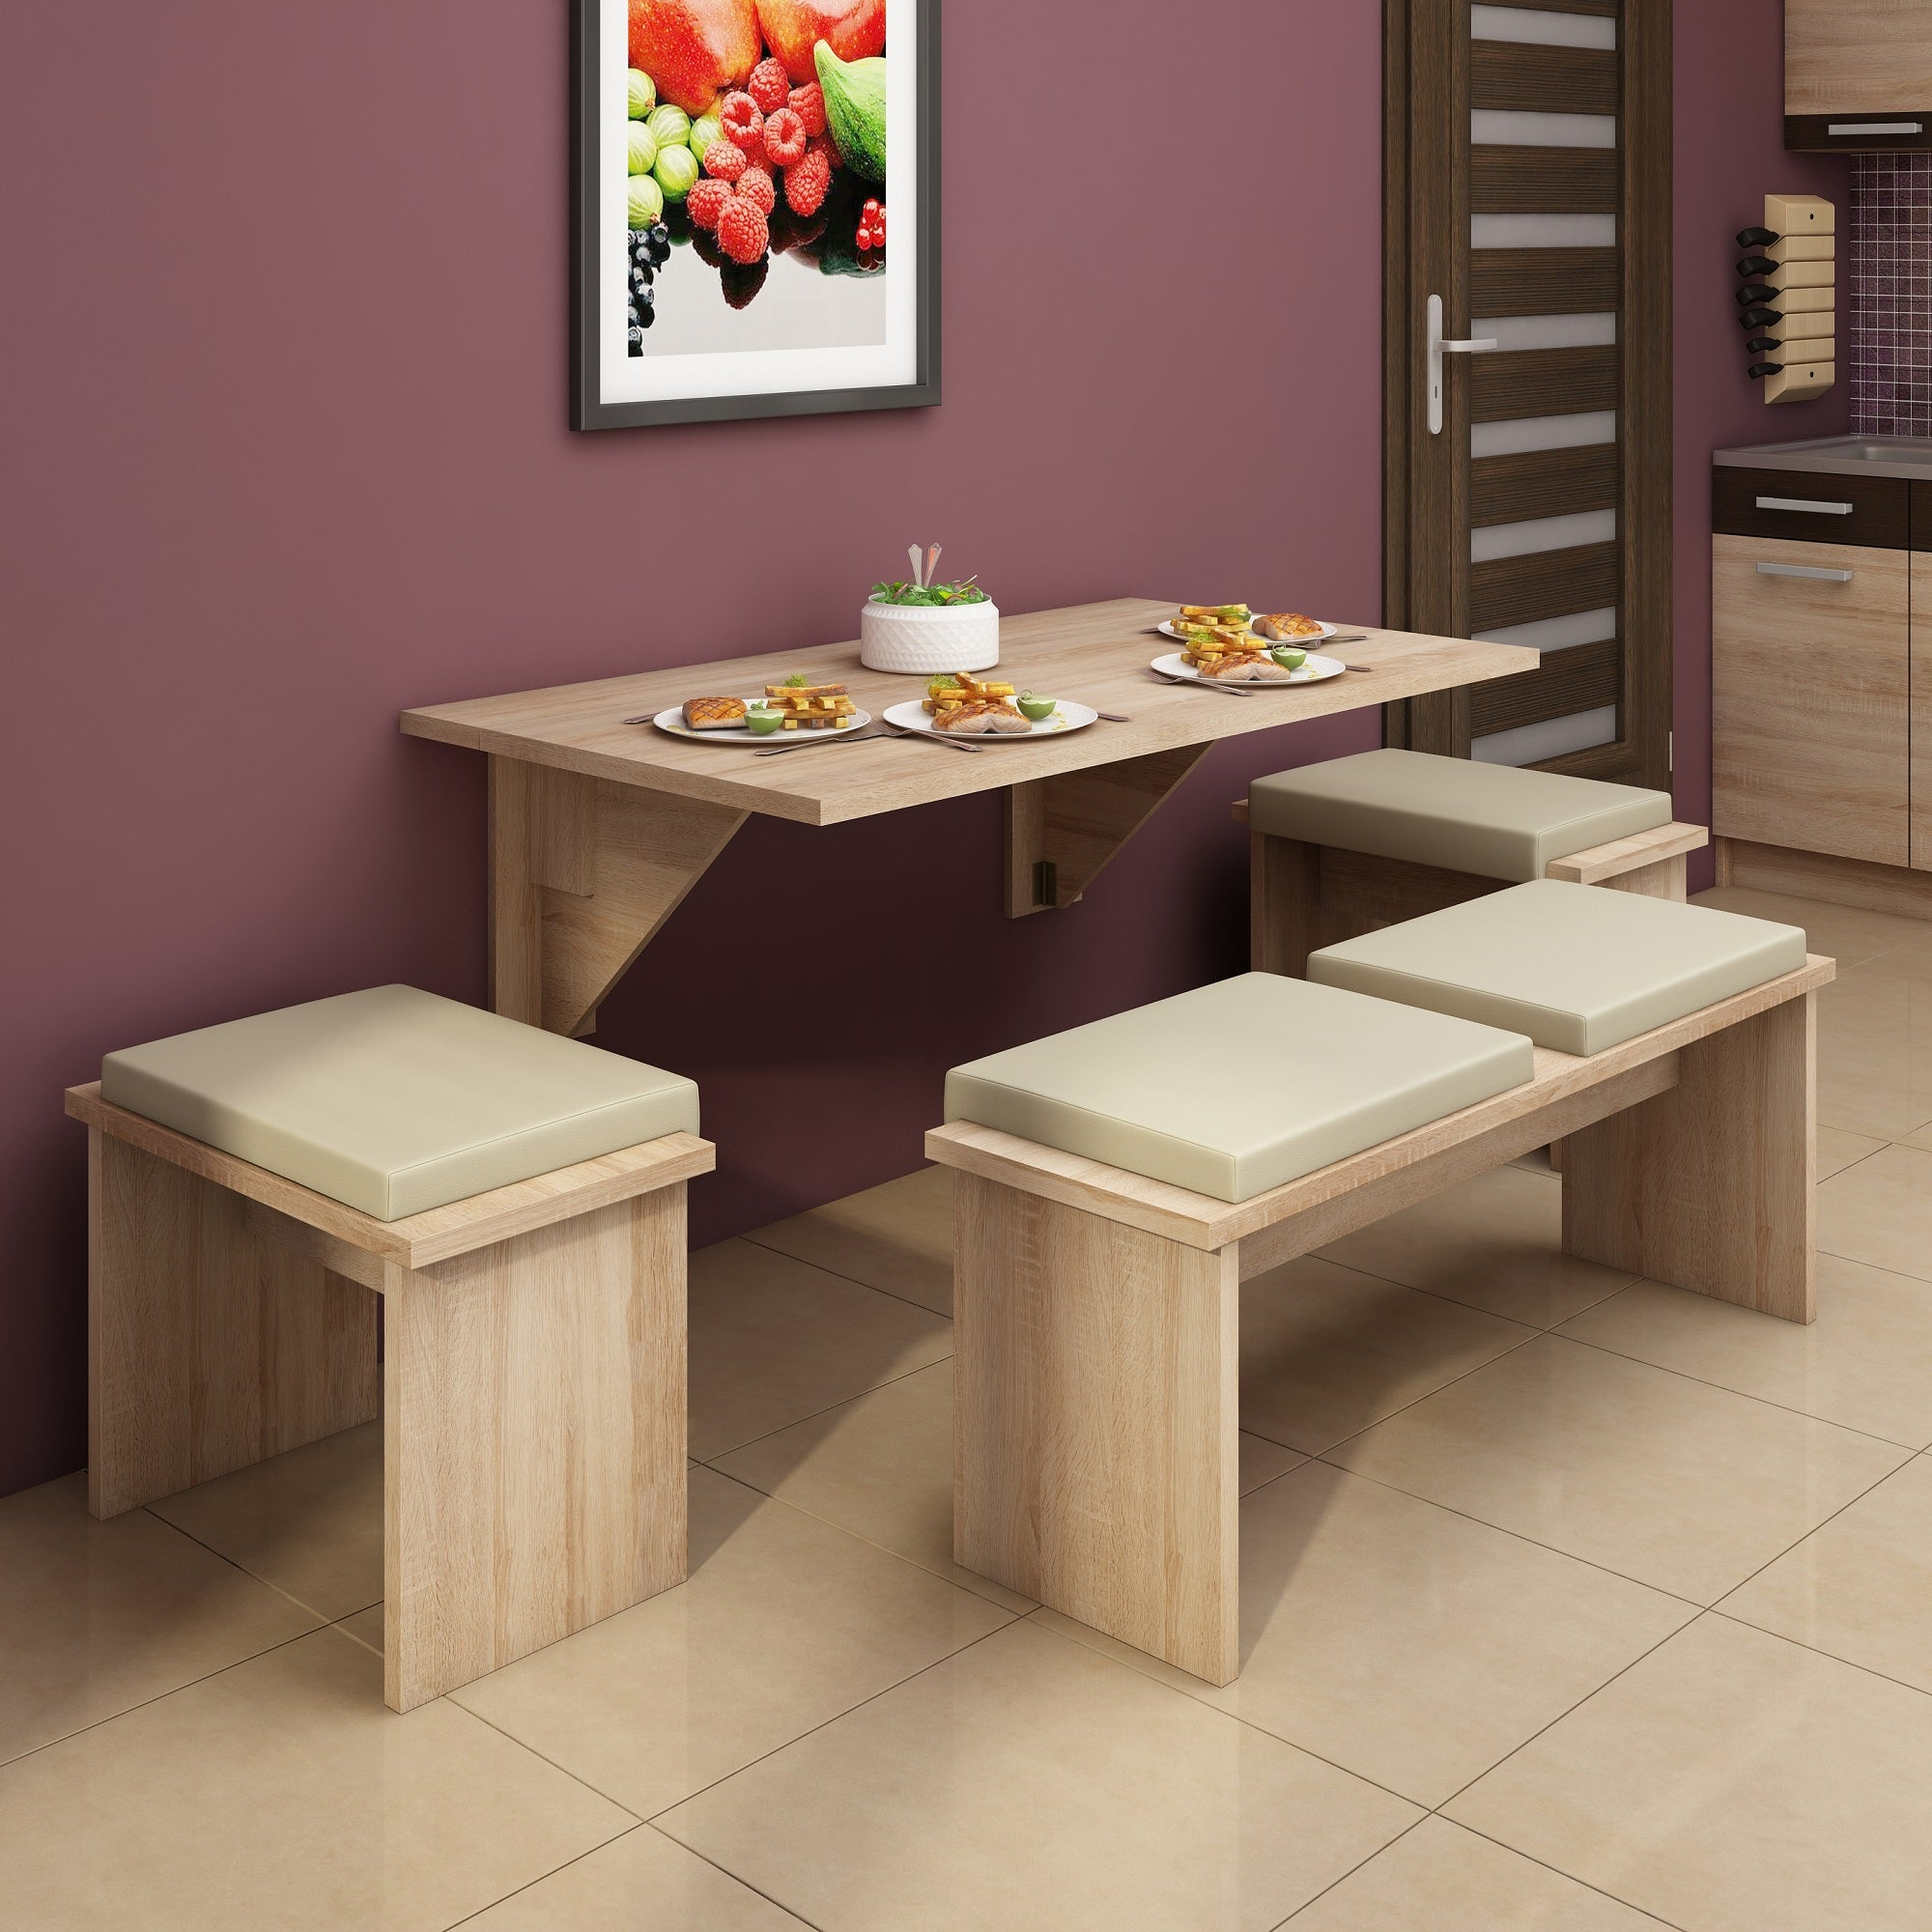 Expert F Wall-Mounted Drop Leaf Dining Table